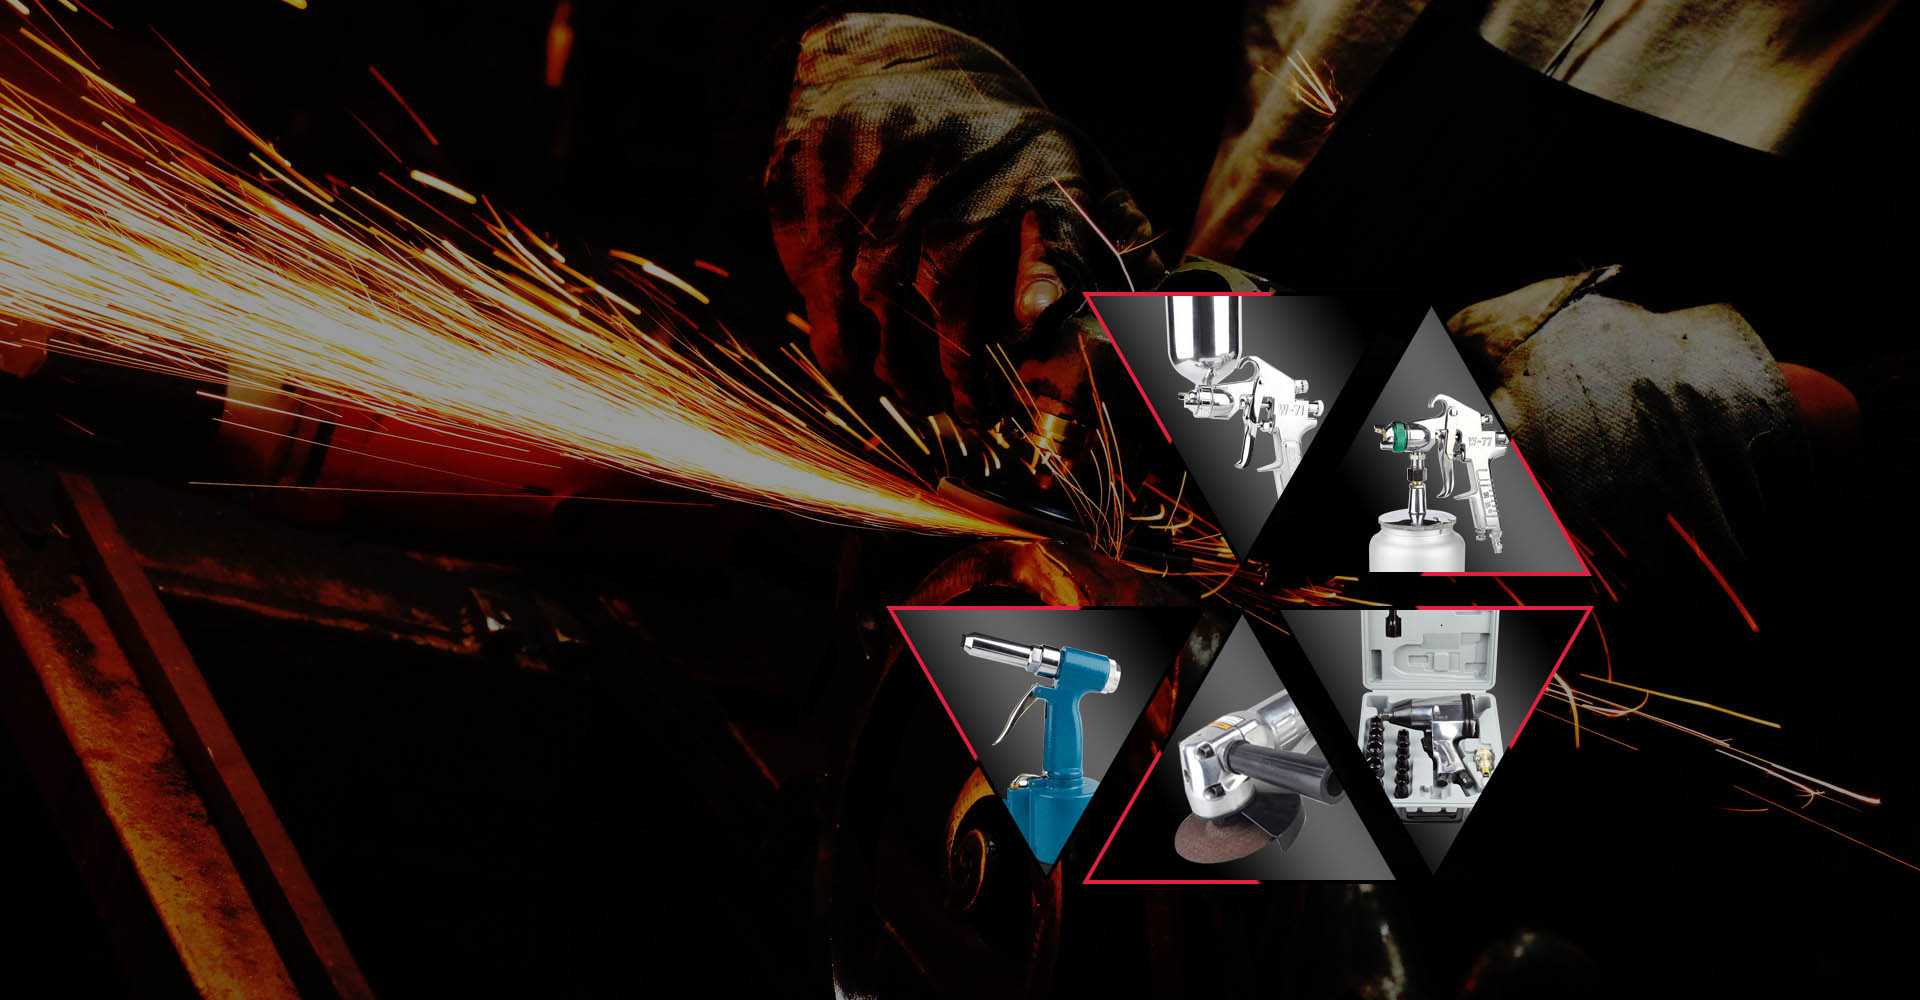 Specializing in the production of various Air tools, spray guns